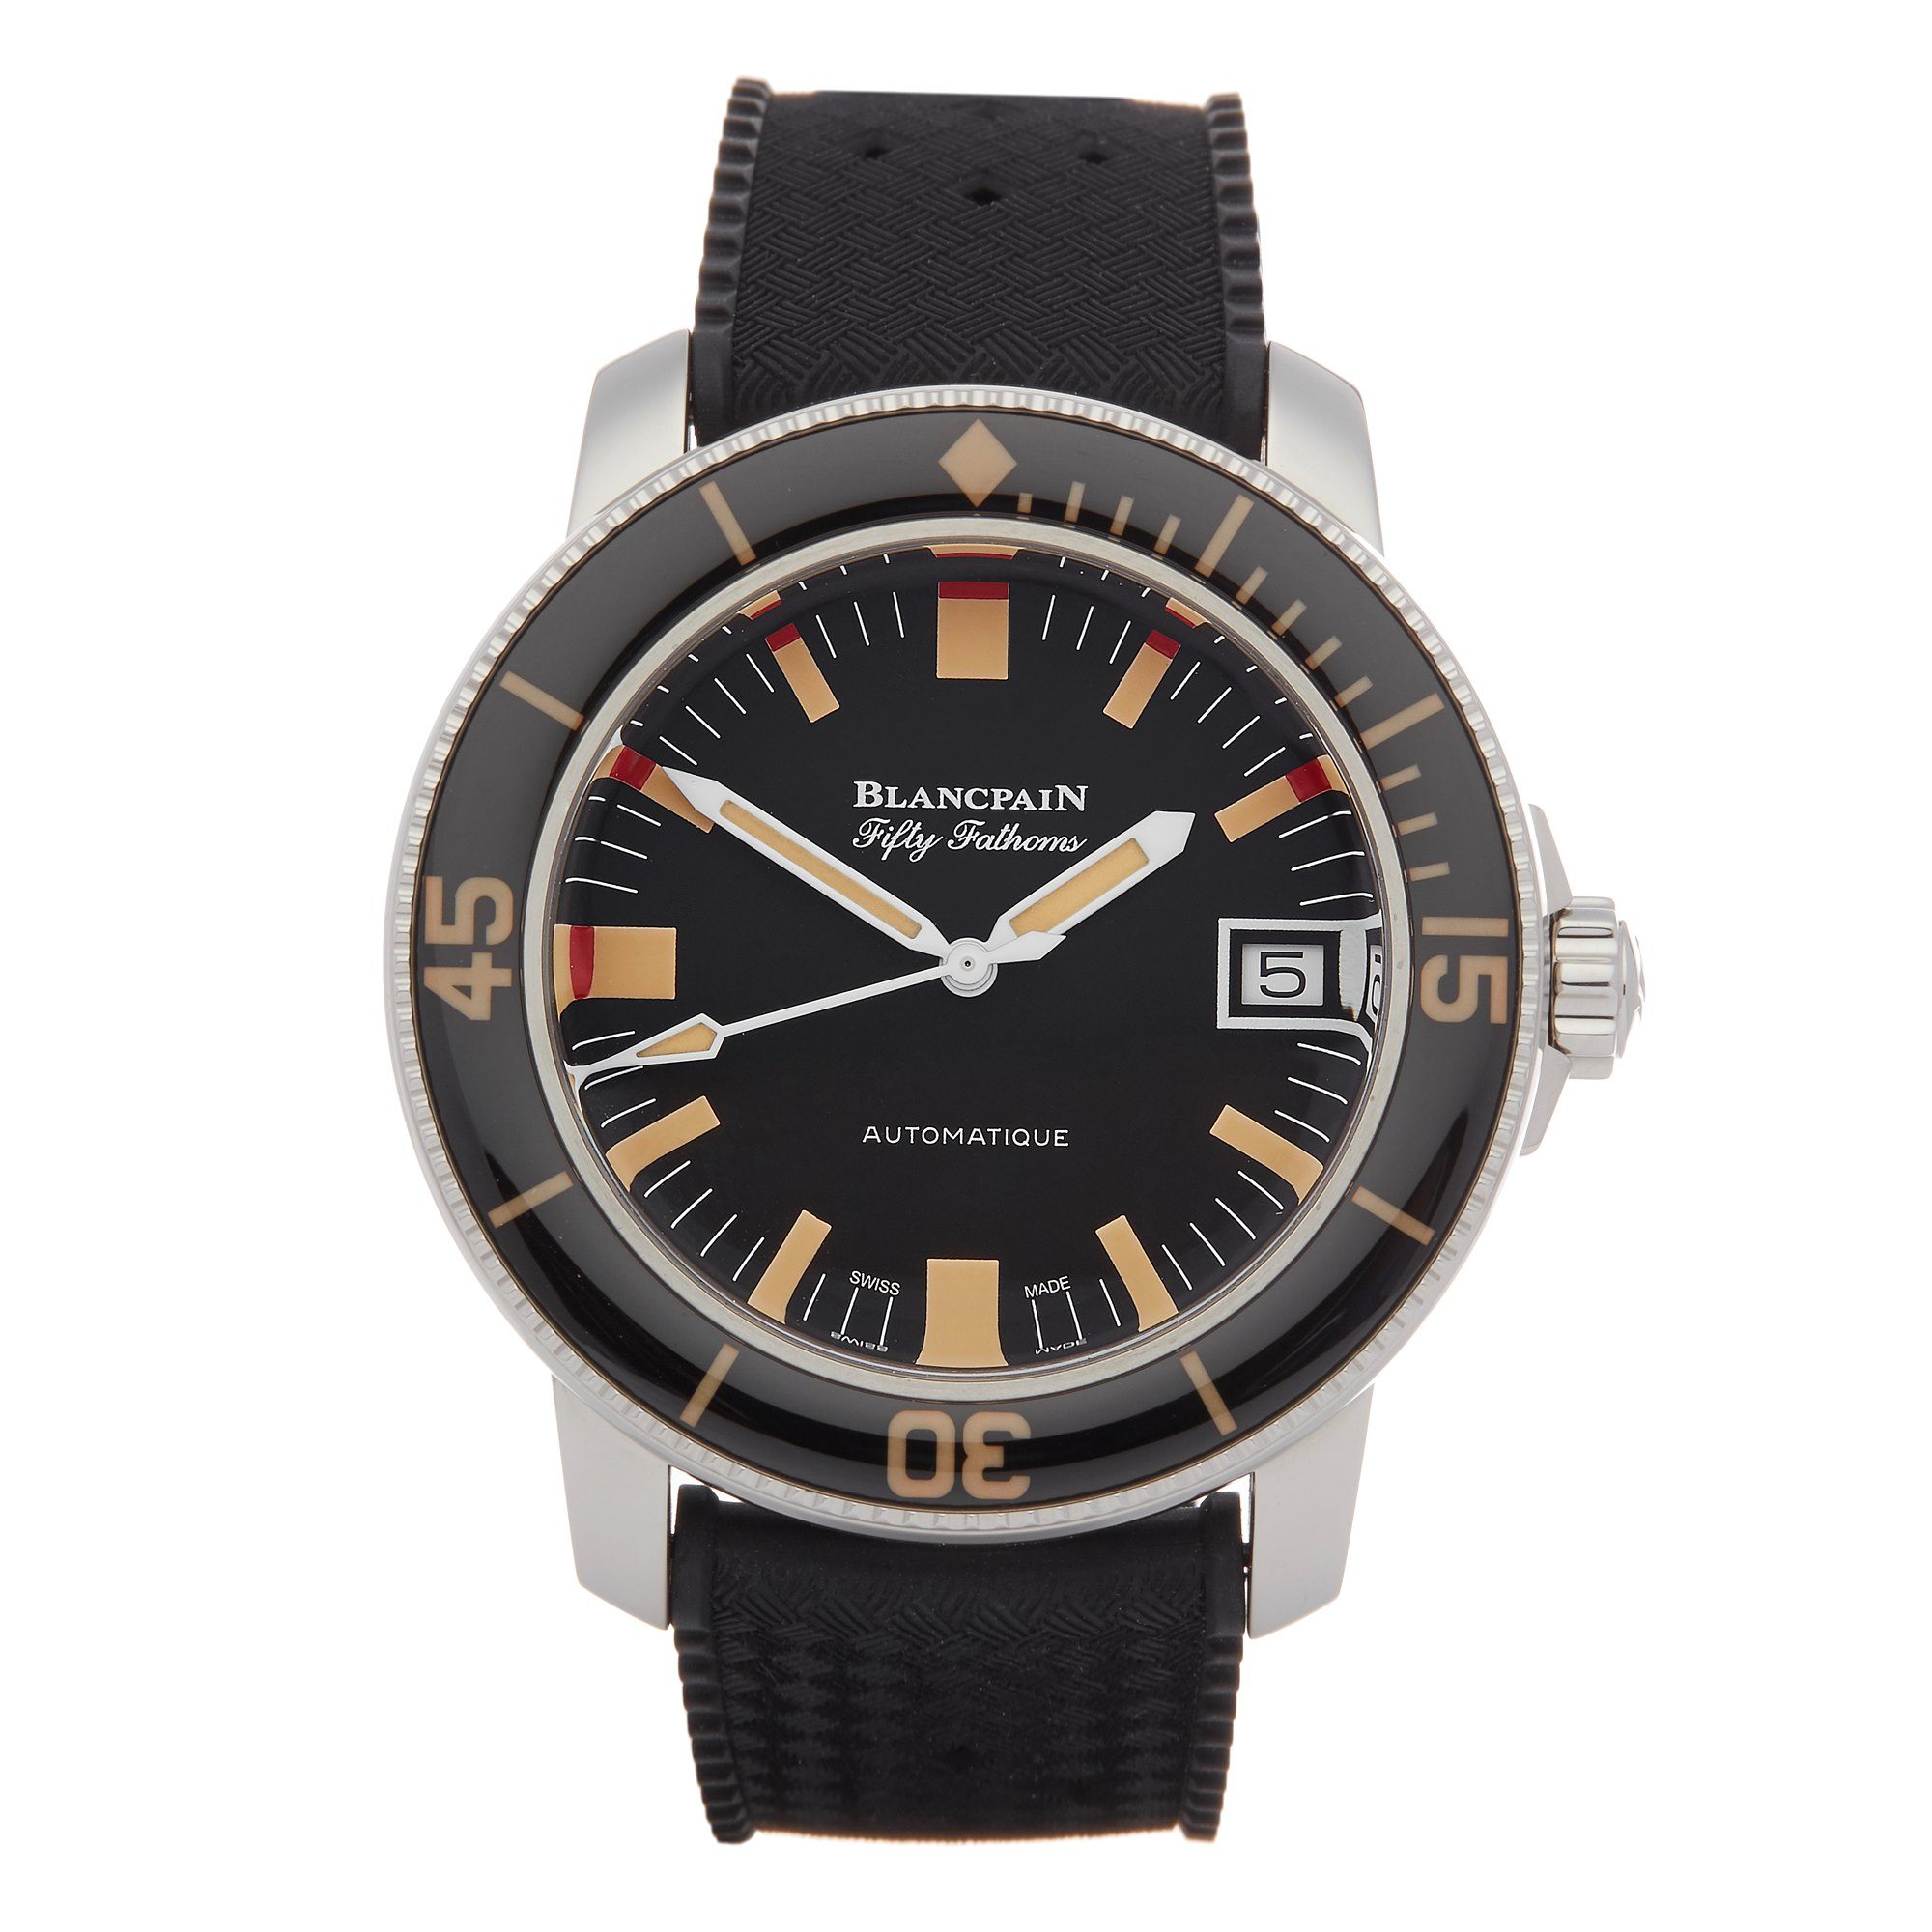 Blancpain Fifty Fathoms Barakuda Limited Edition 415/500 Stainless Steel 5008B-1130-B52A